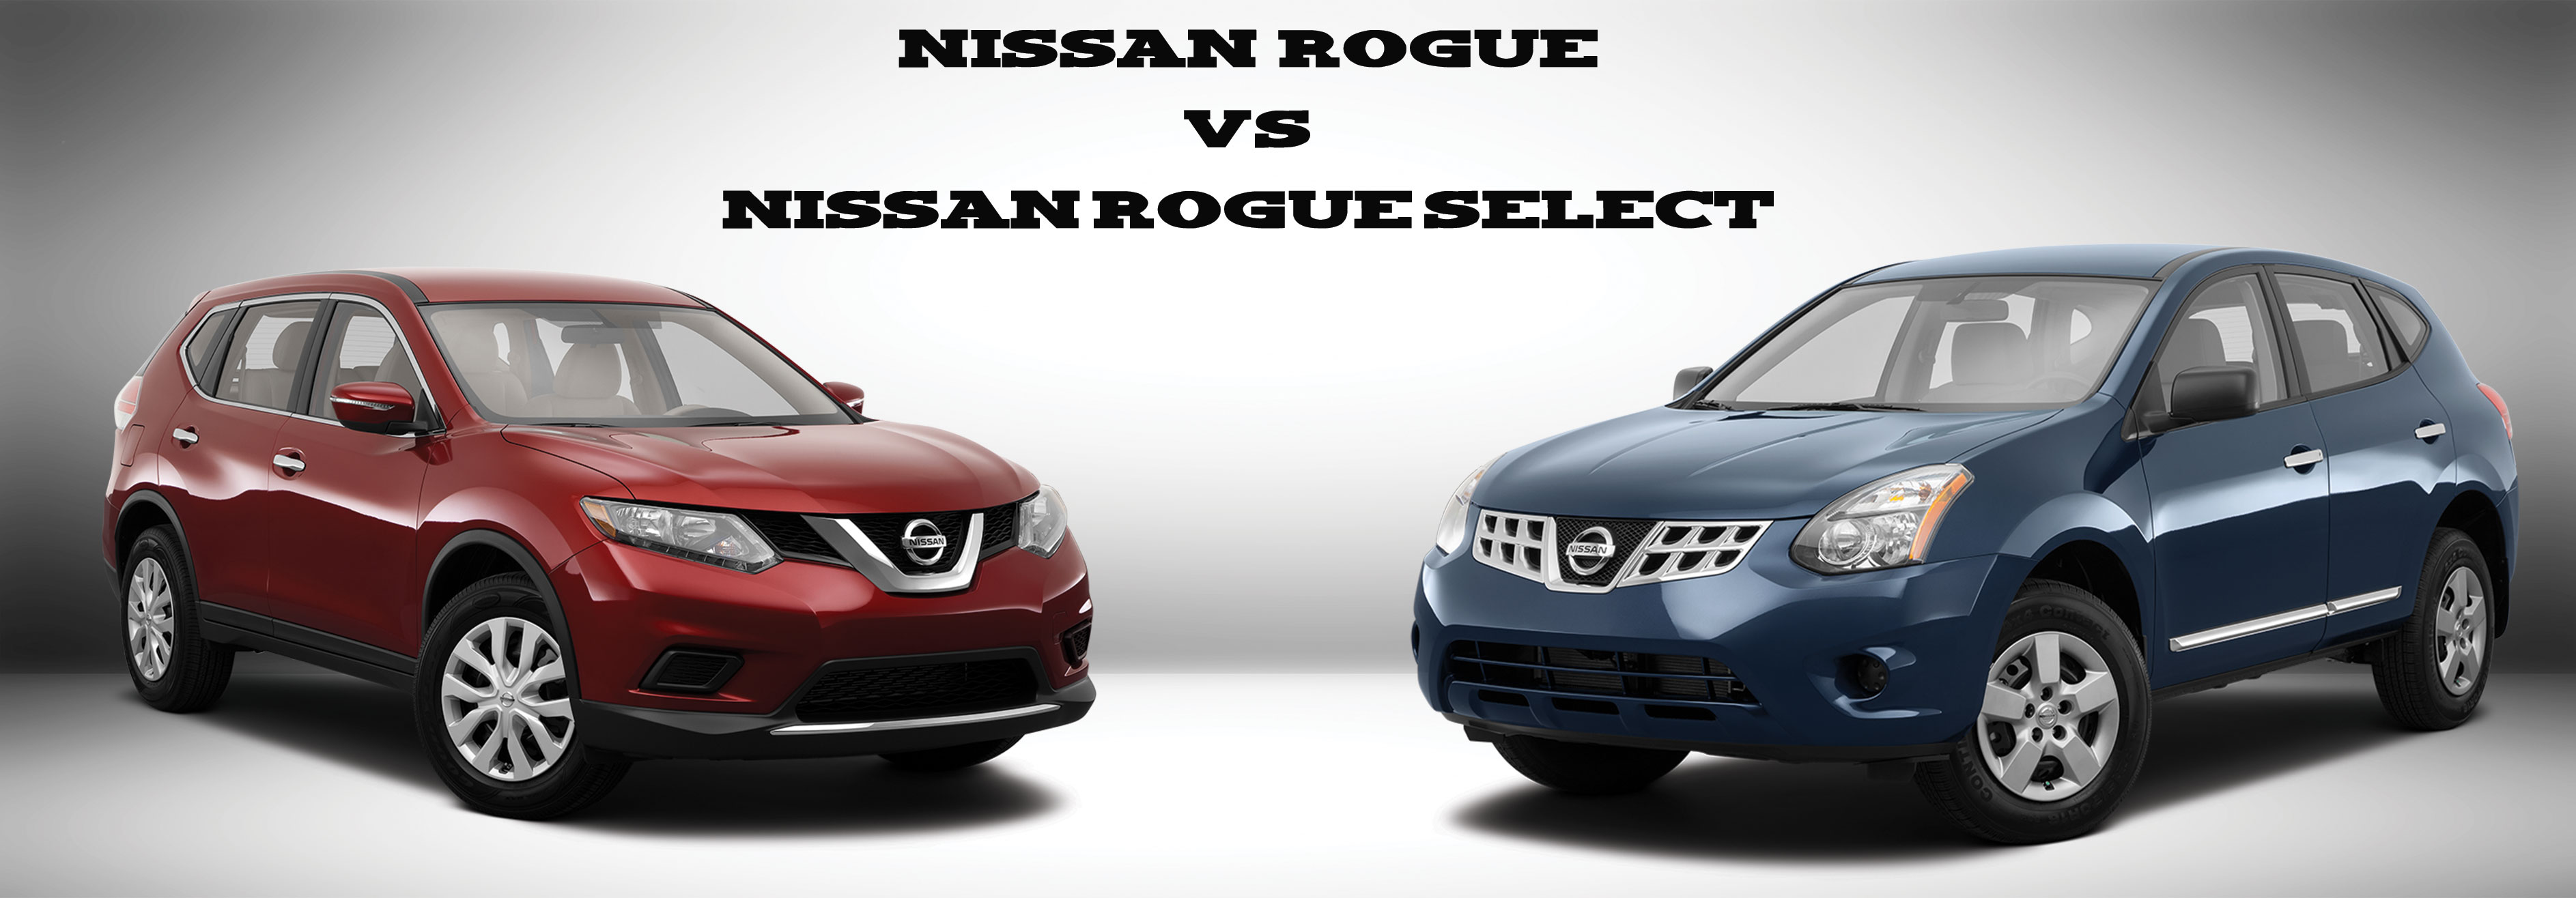 Nissan Rogue Select >> Nissan Rogue Vs Nissan Rogue Select What Is The Difference Jack